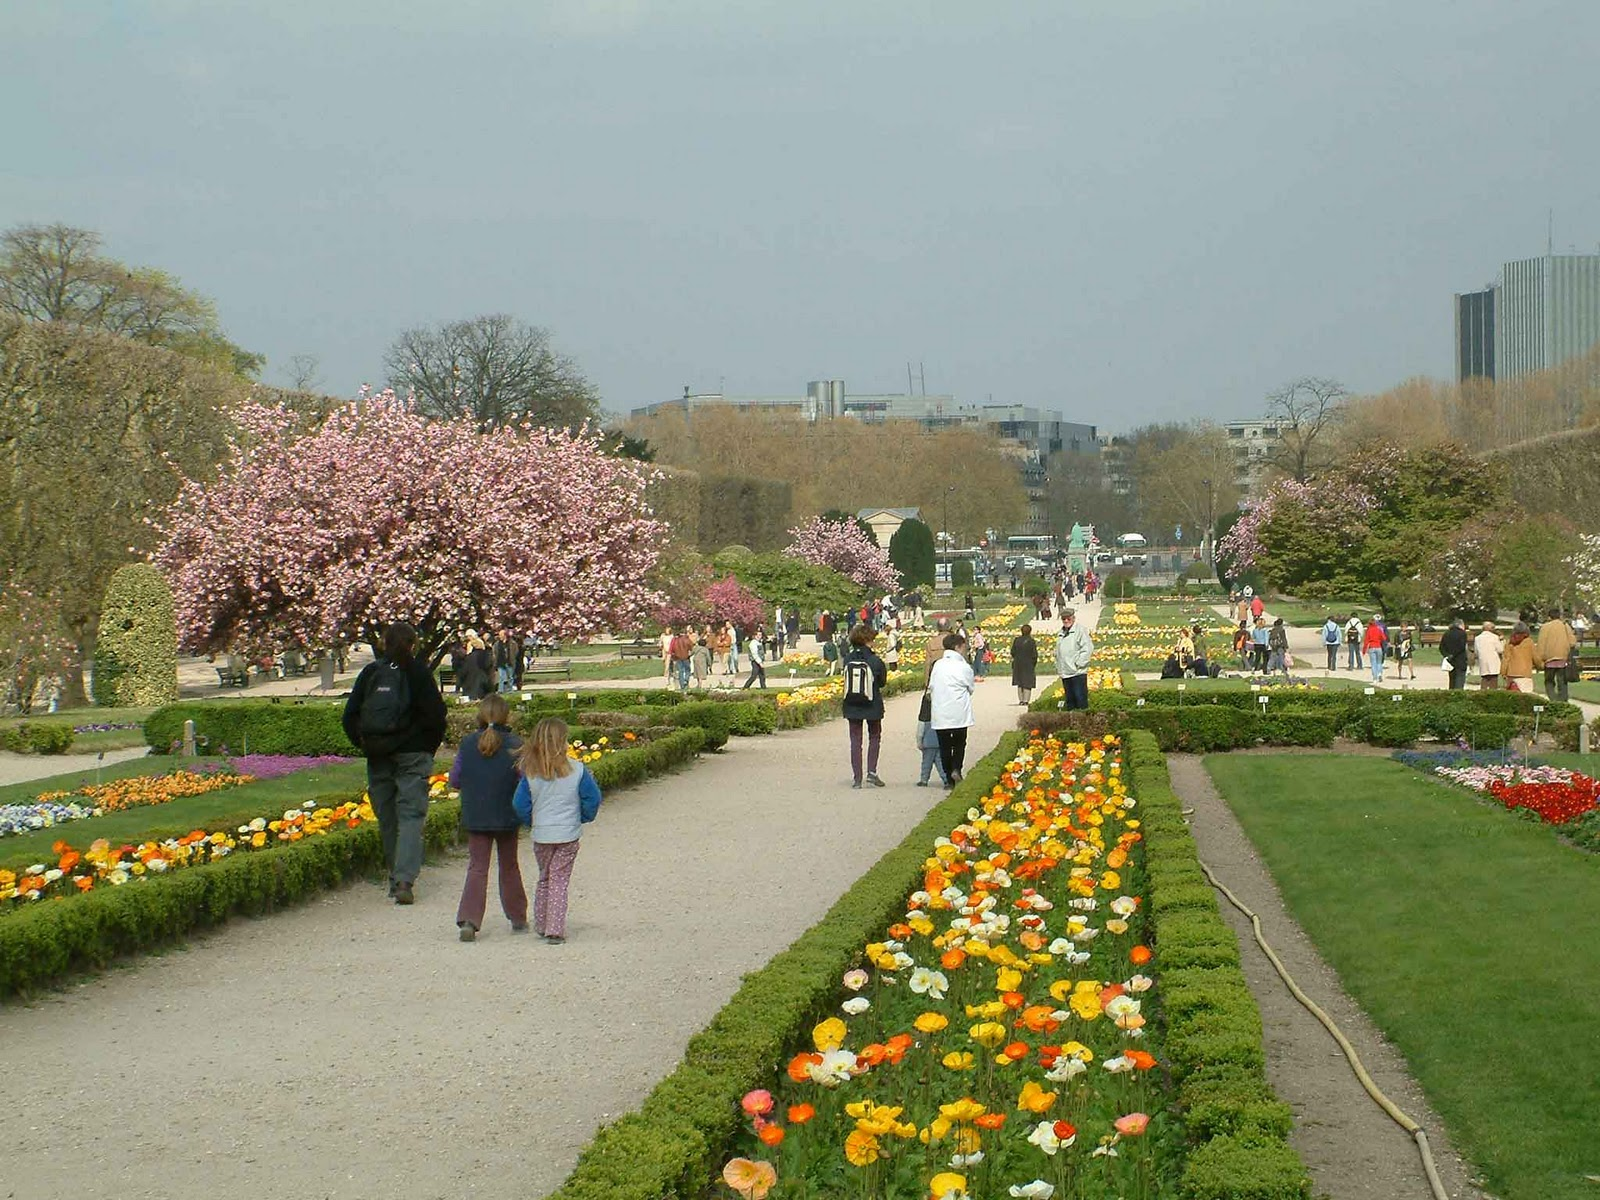 So if you are interested then please come to this park for Jardin ds plantes